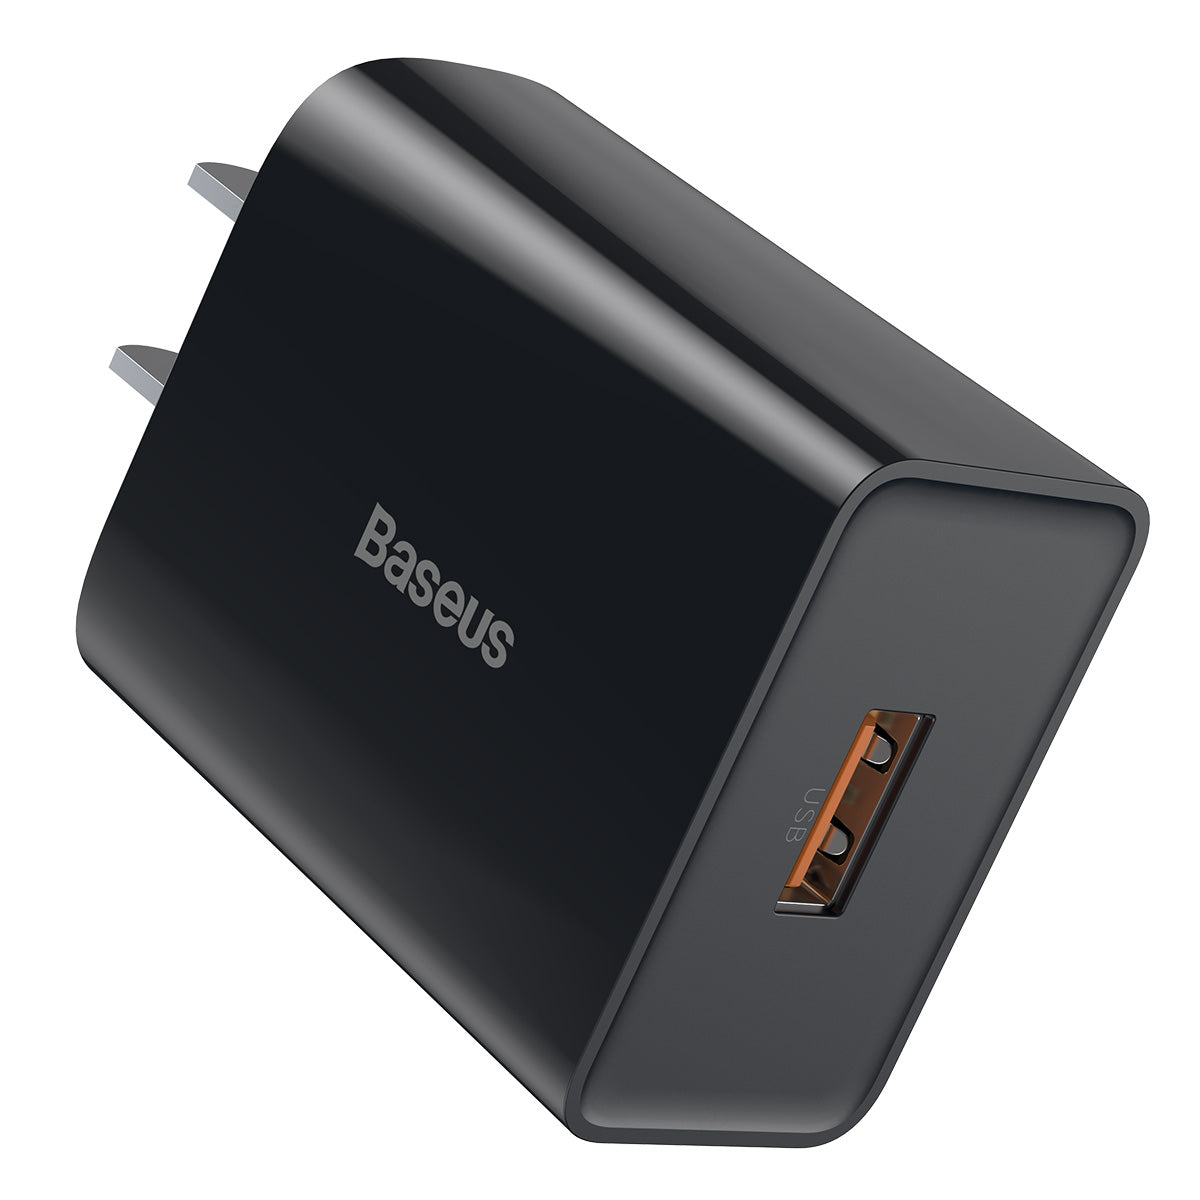 BASEUS Speed Mini QC3.0 PD3.0 Quick Charger with USB-A port (18W)